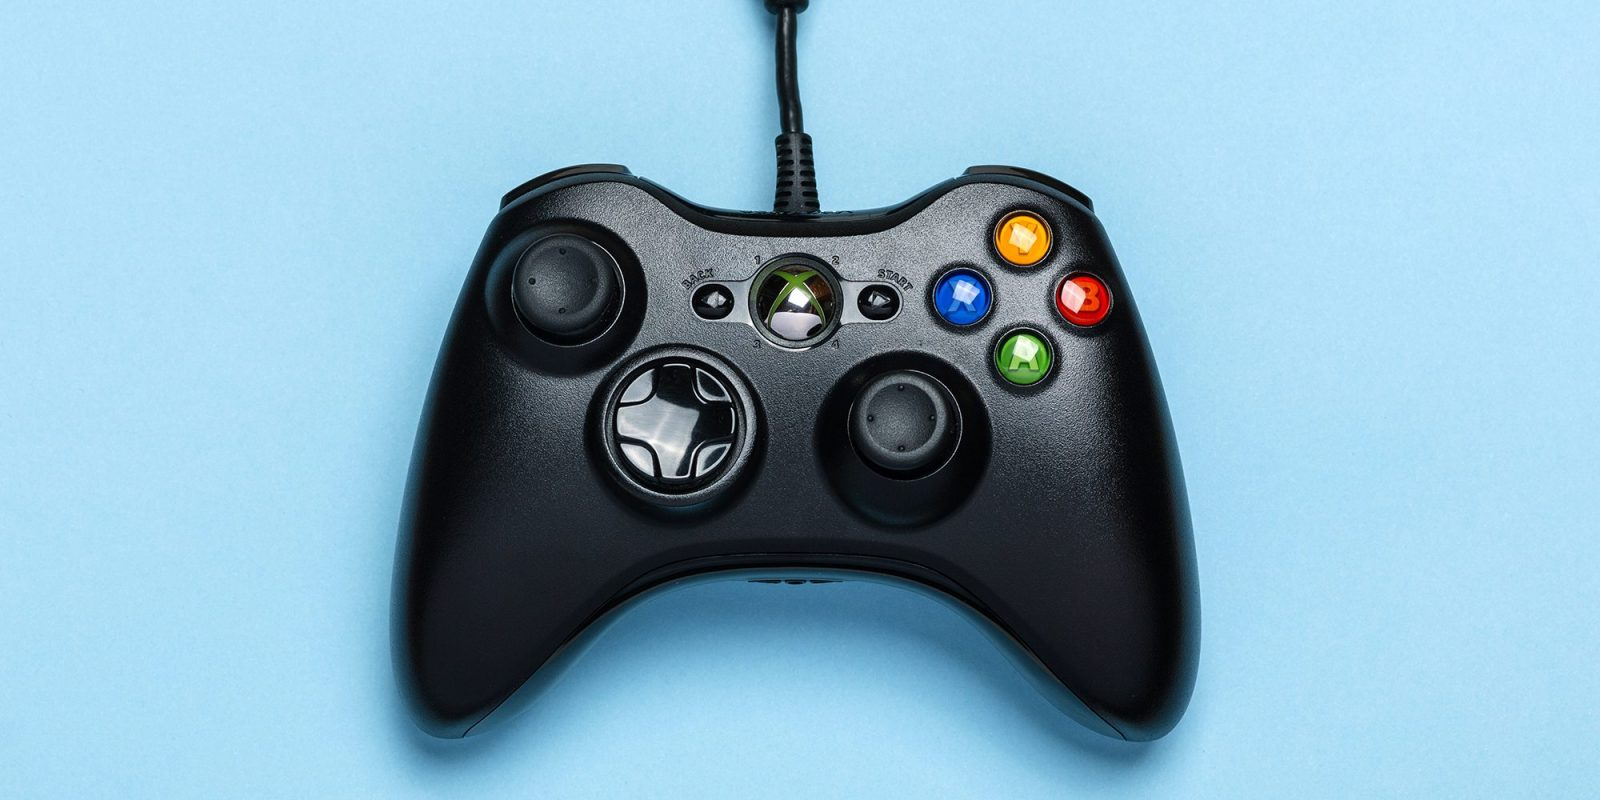 Microsoft's Xbox Live social gaming feature can now be